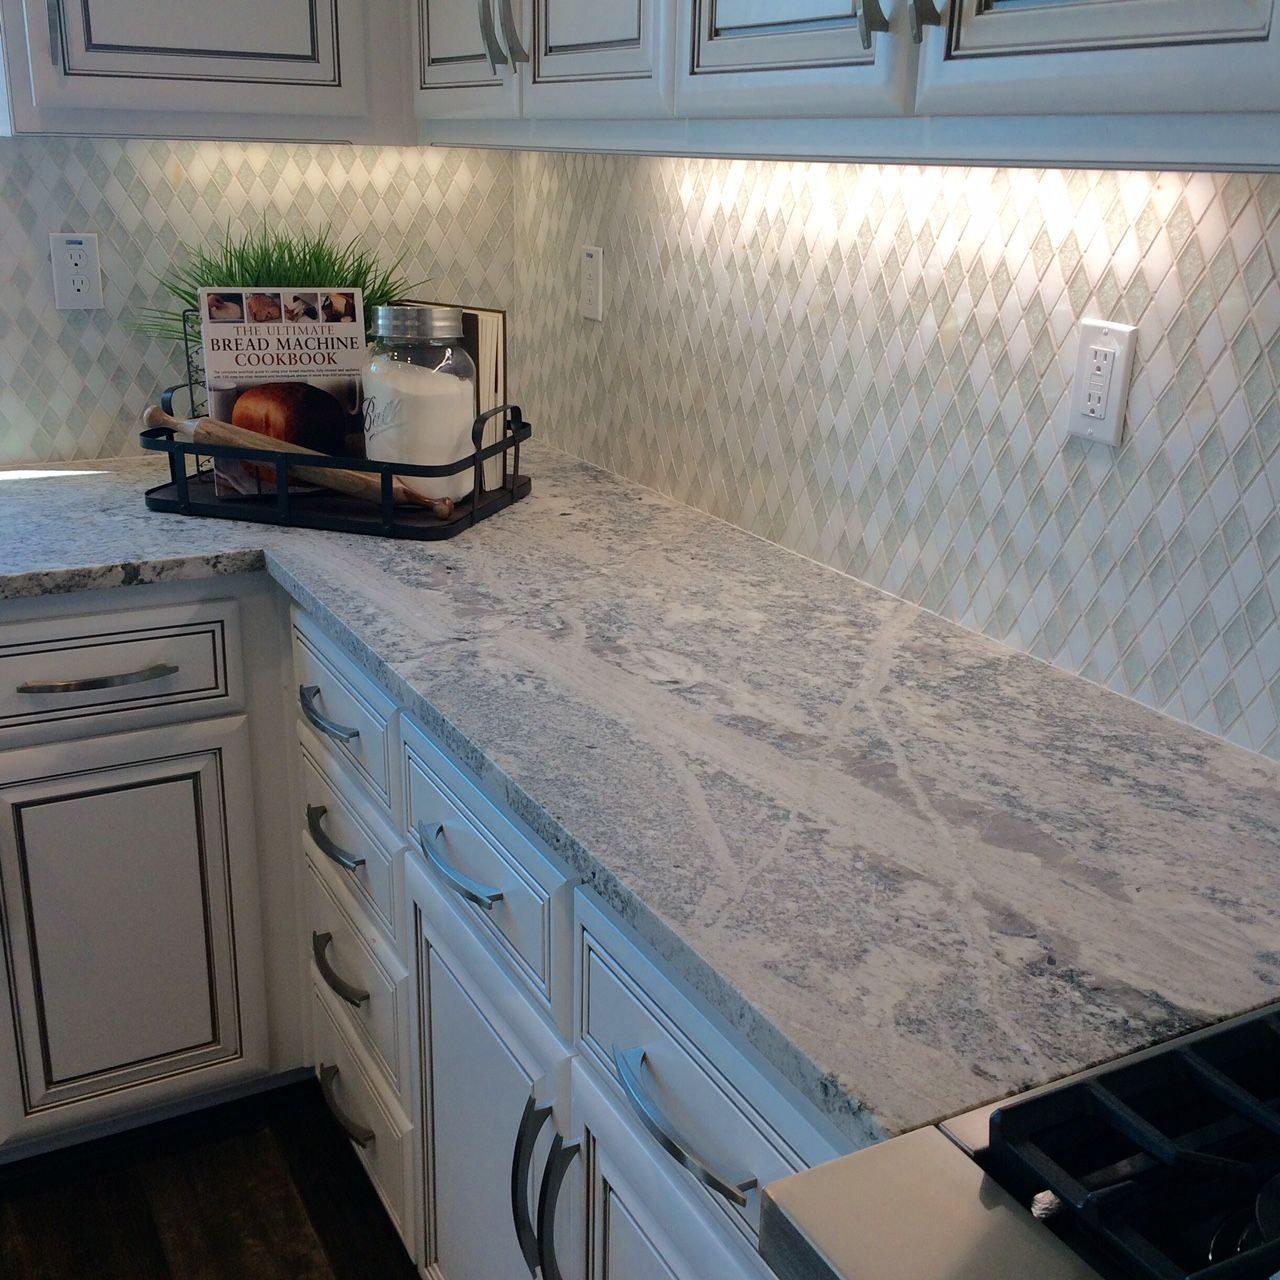 Arizona Tile Carries Monte Cristo In Natural Stone Granite Slabs Displaying White Silver Yellow Gold And Bluish Tones